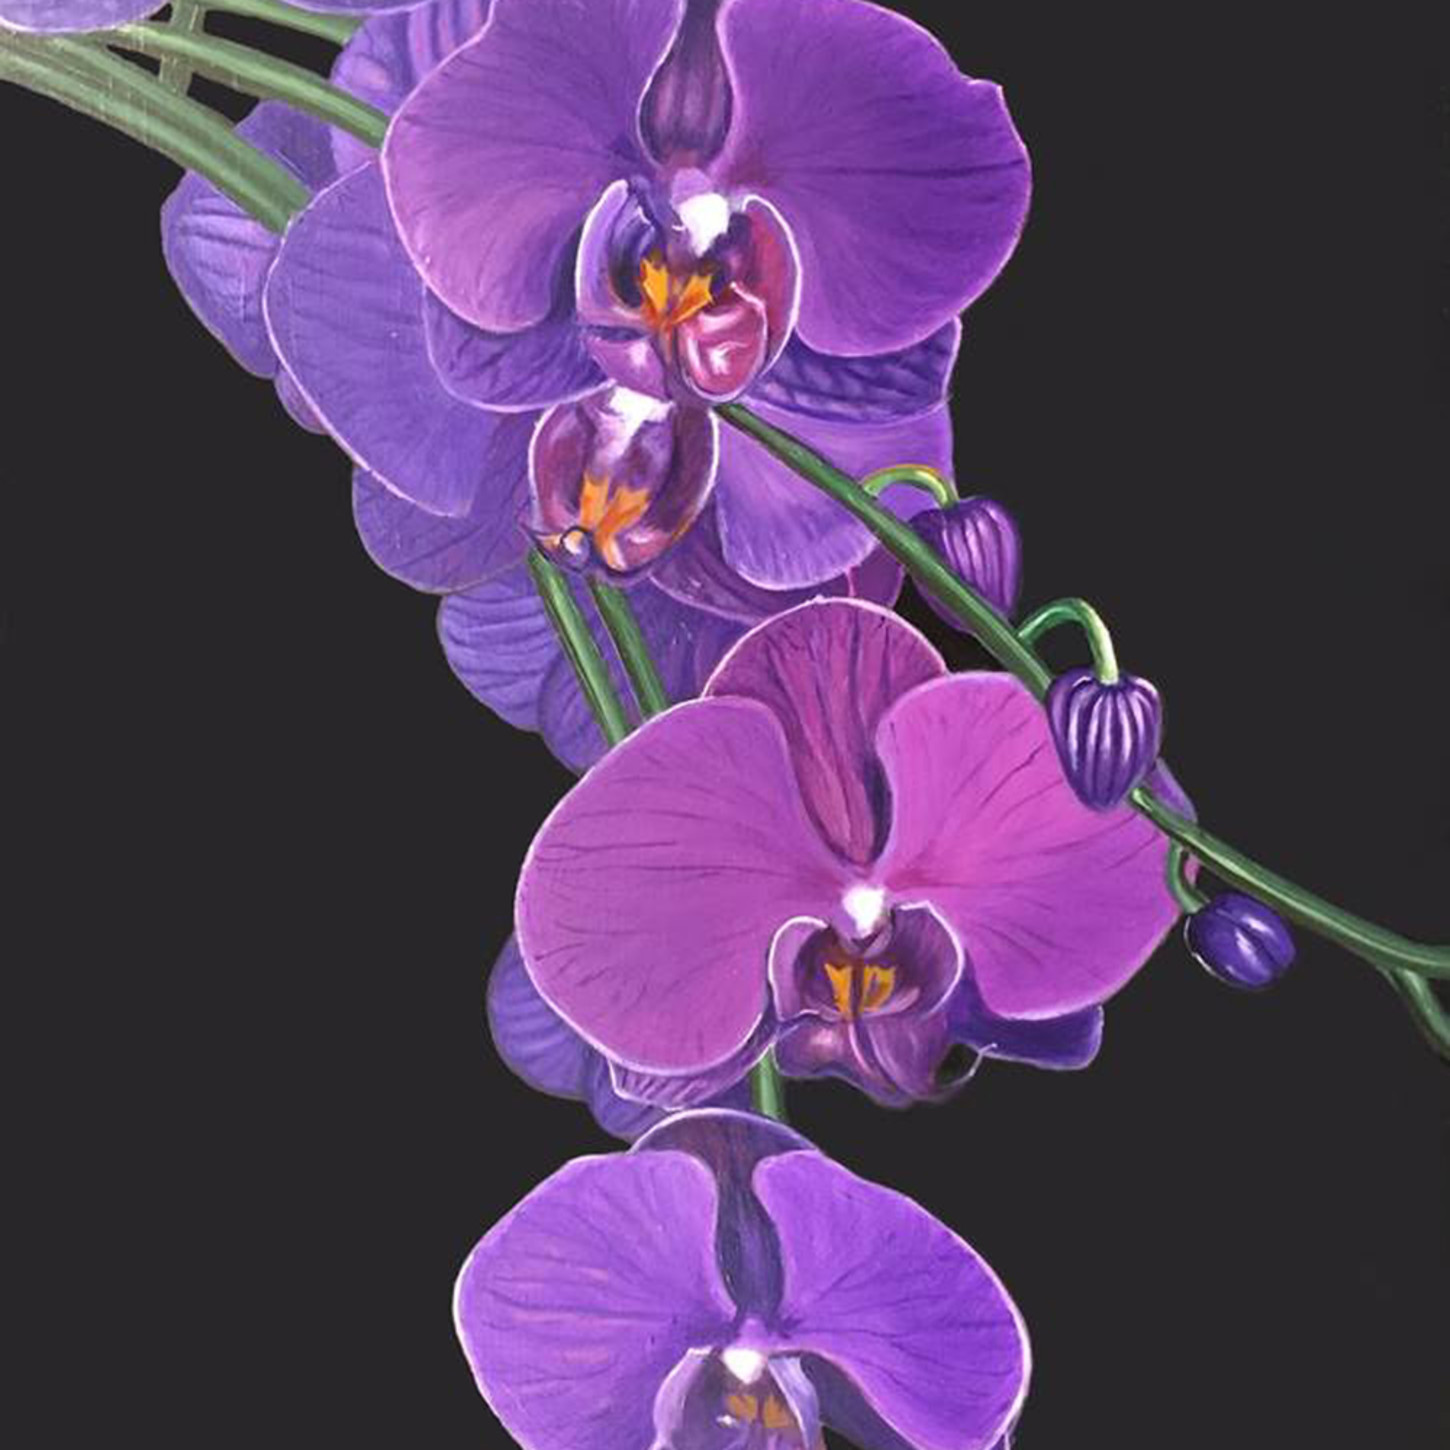 Violet orchids2 fhfhrf